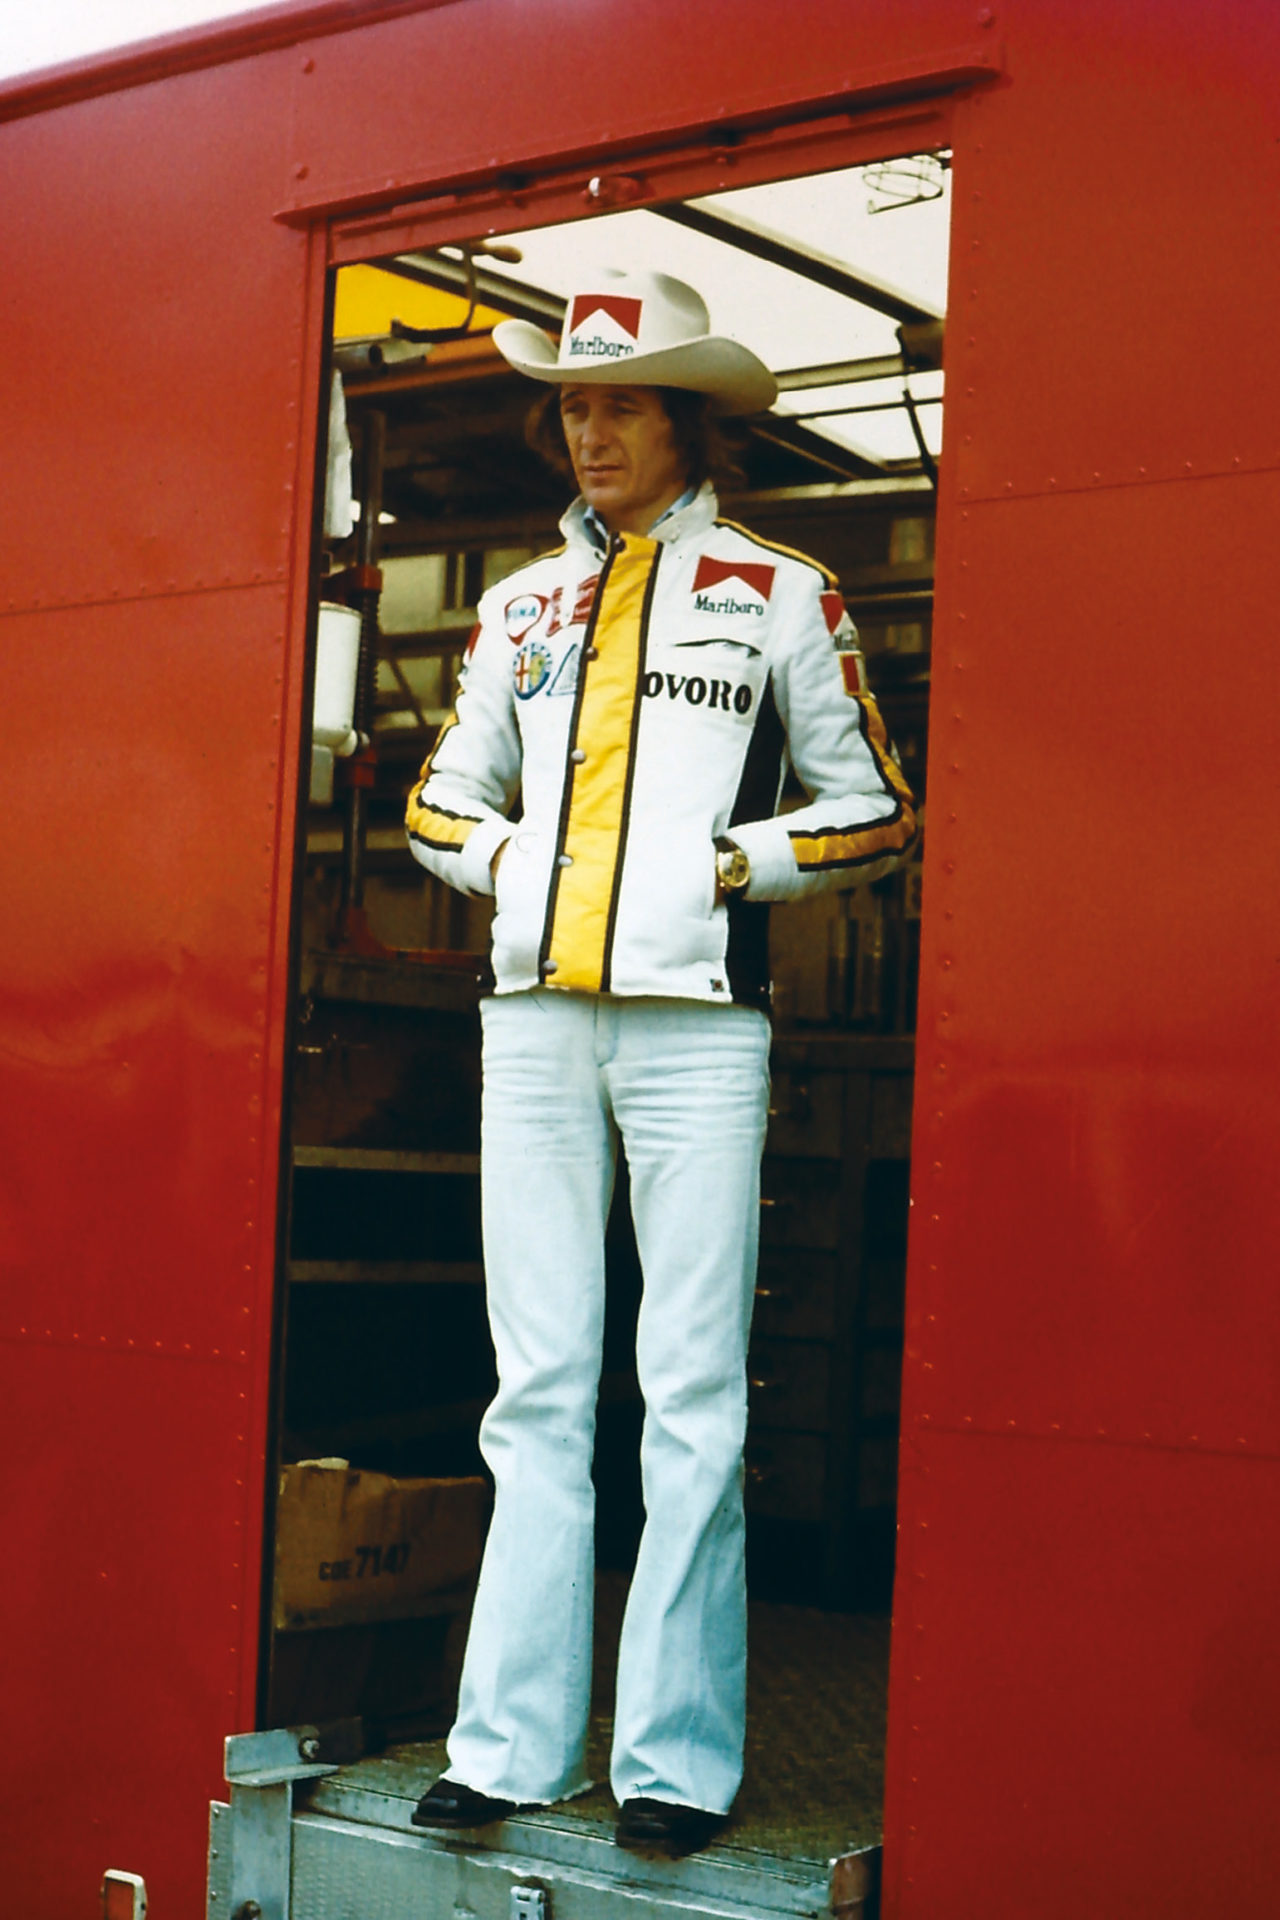 Despite being very much Italian, Arturo Merzario brought a bit of Wild West culture wherever he went with his signature cowboy hat